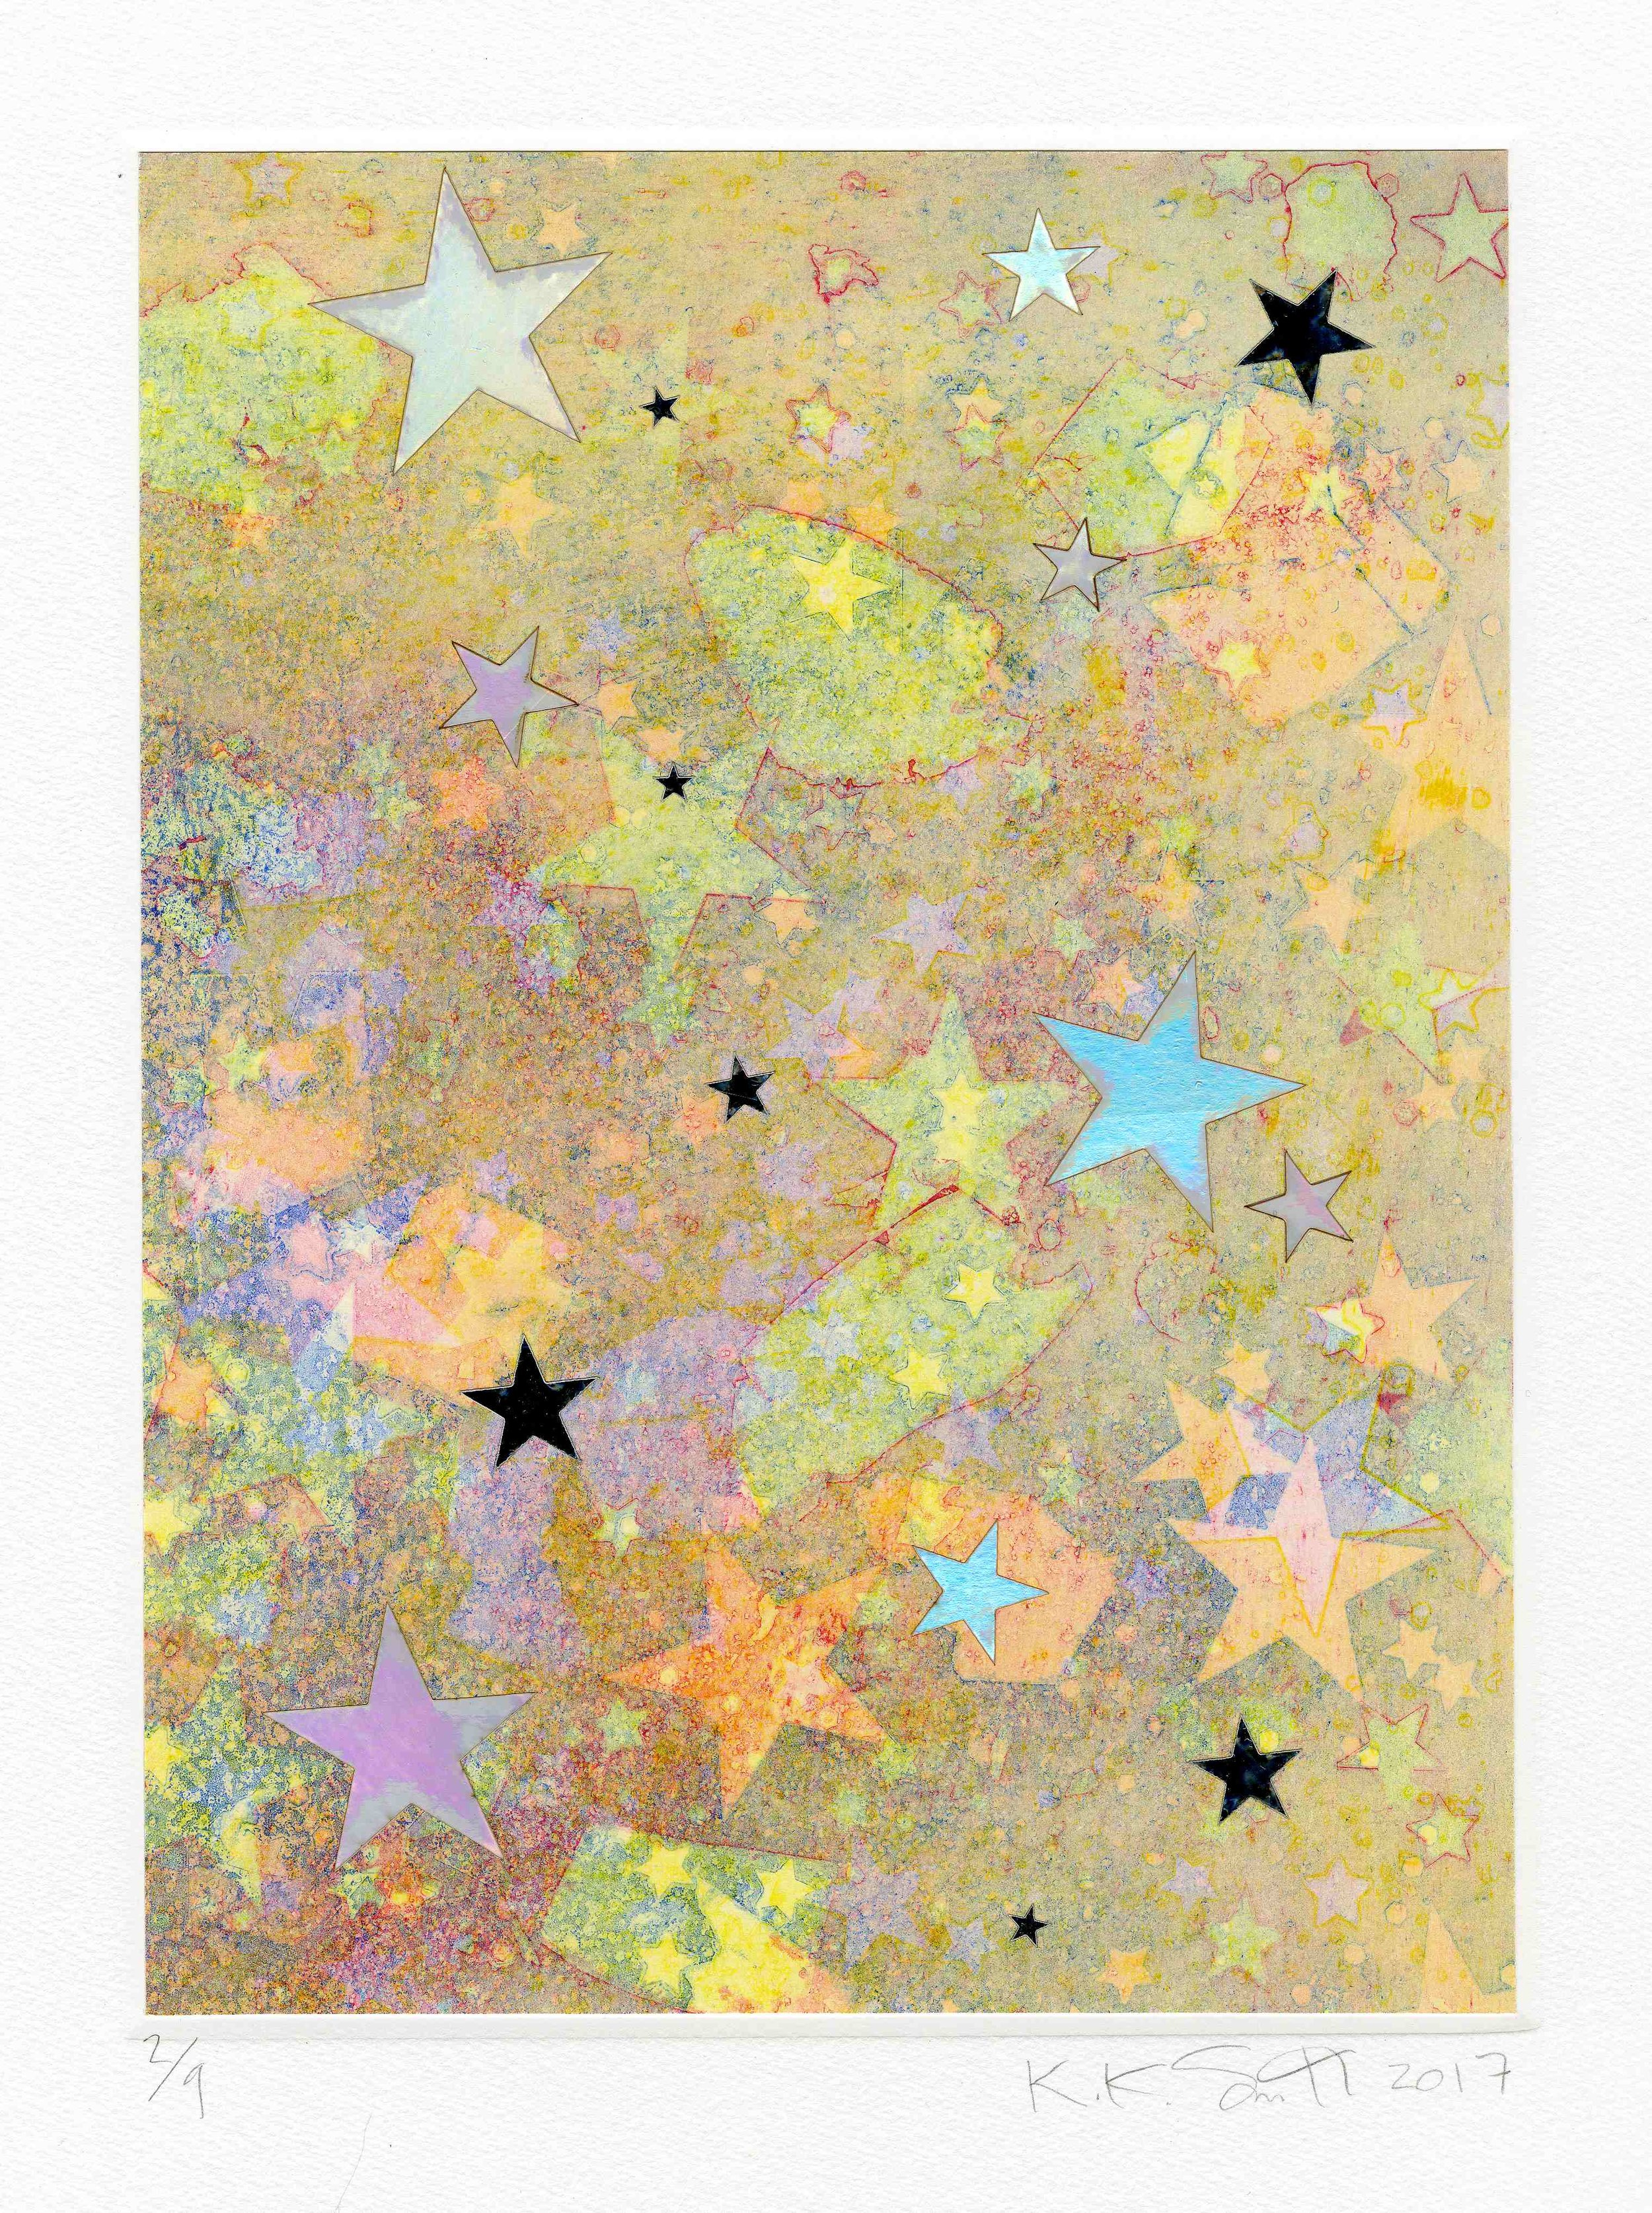 Kiki Smith The State of the Sky, 2017 Intaglio with chine collé, mirrored mylar and hologram paper collage